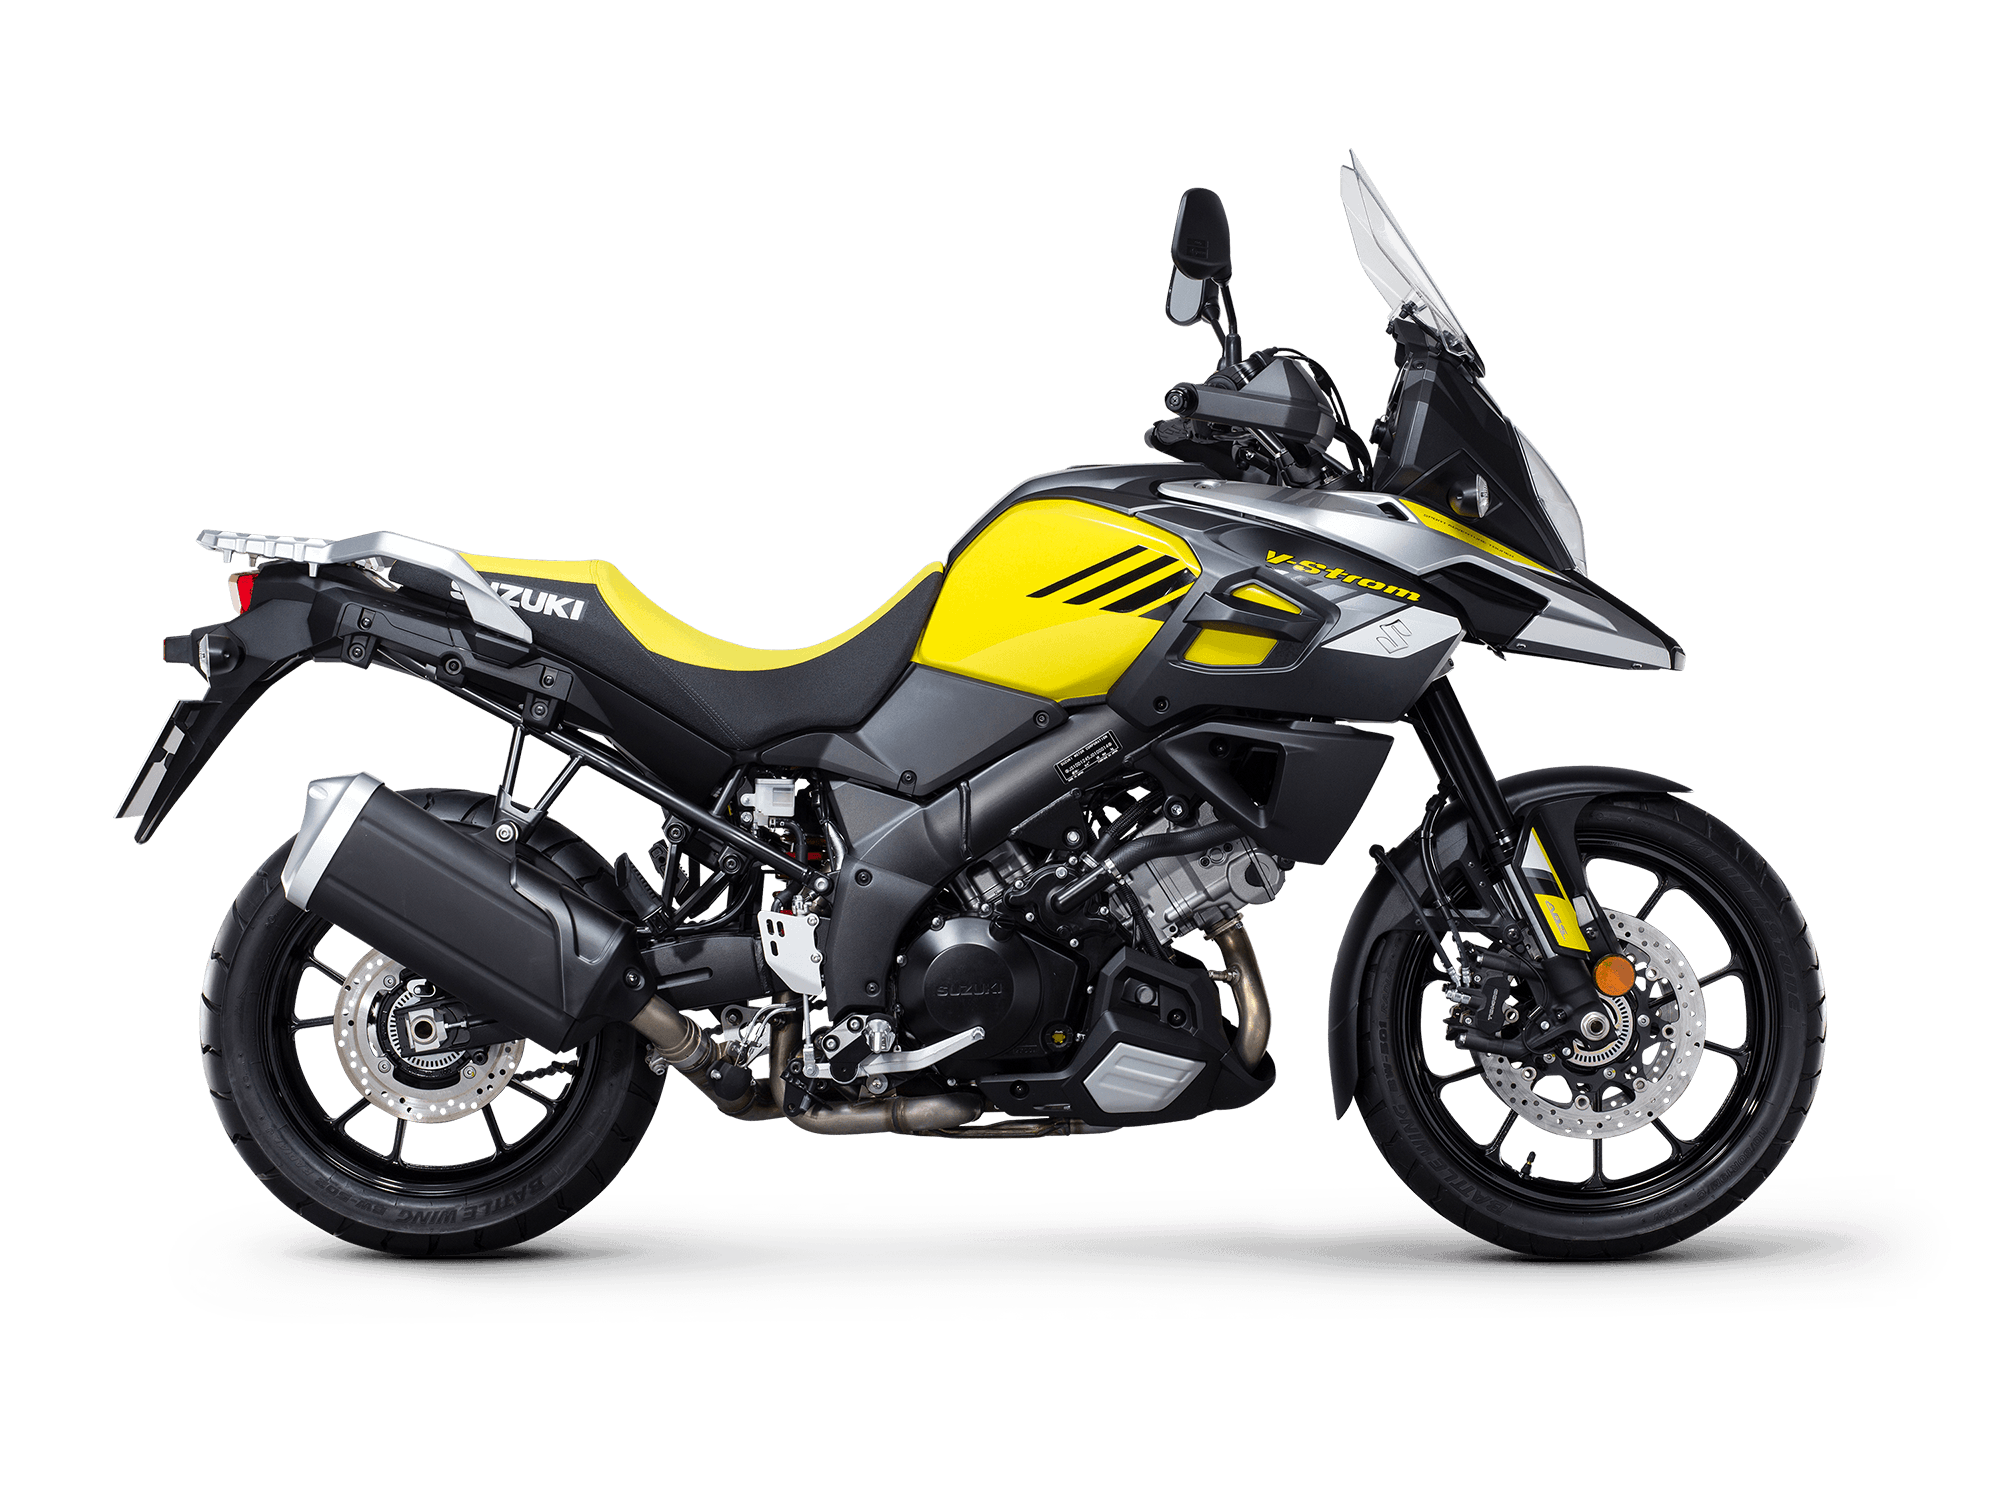 adventure motorcycle: discover the full suzuki range | suzuki bikes uk